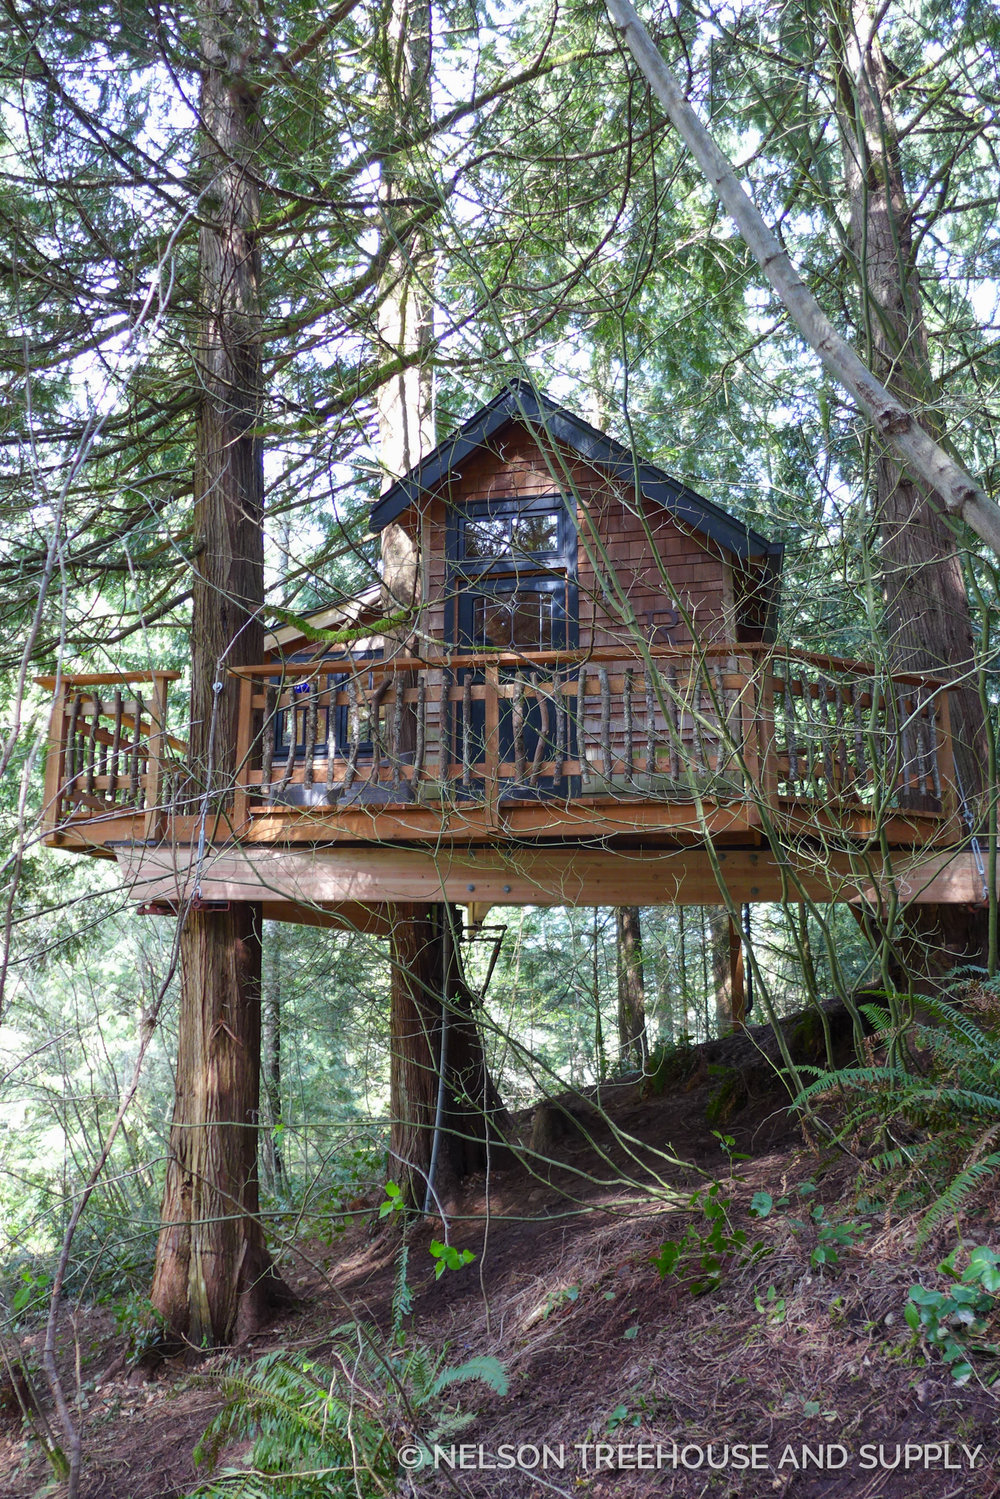 John and Inga's remodeled treehouse.